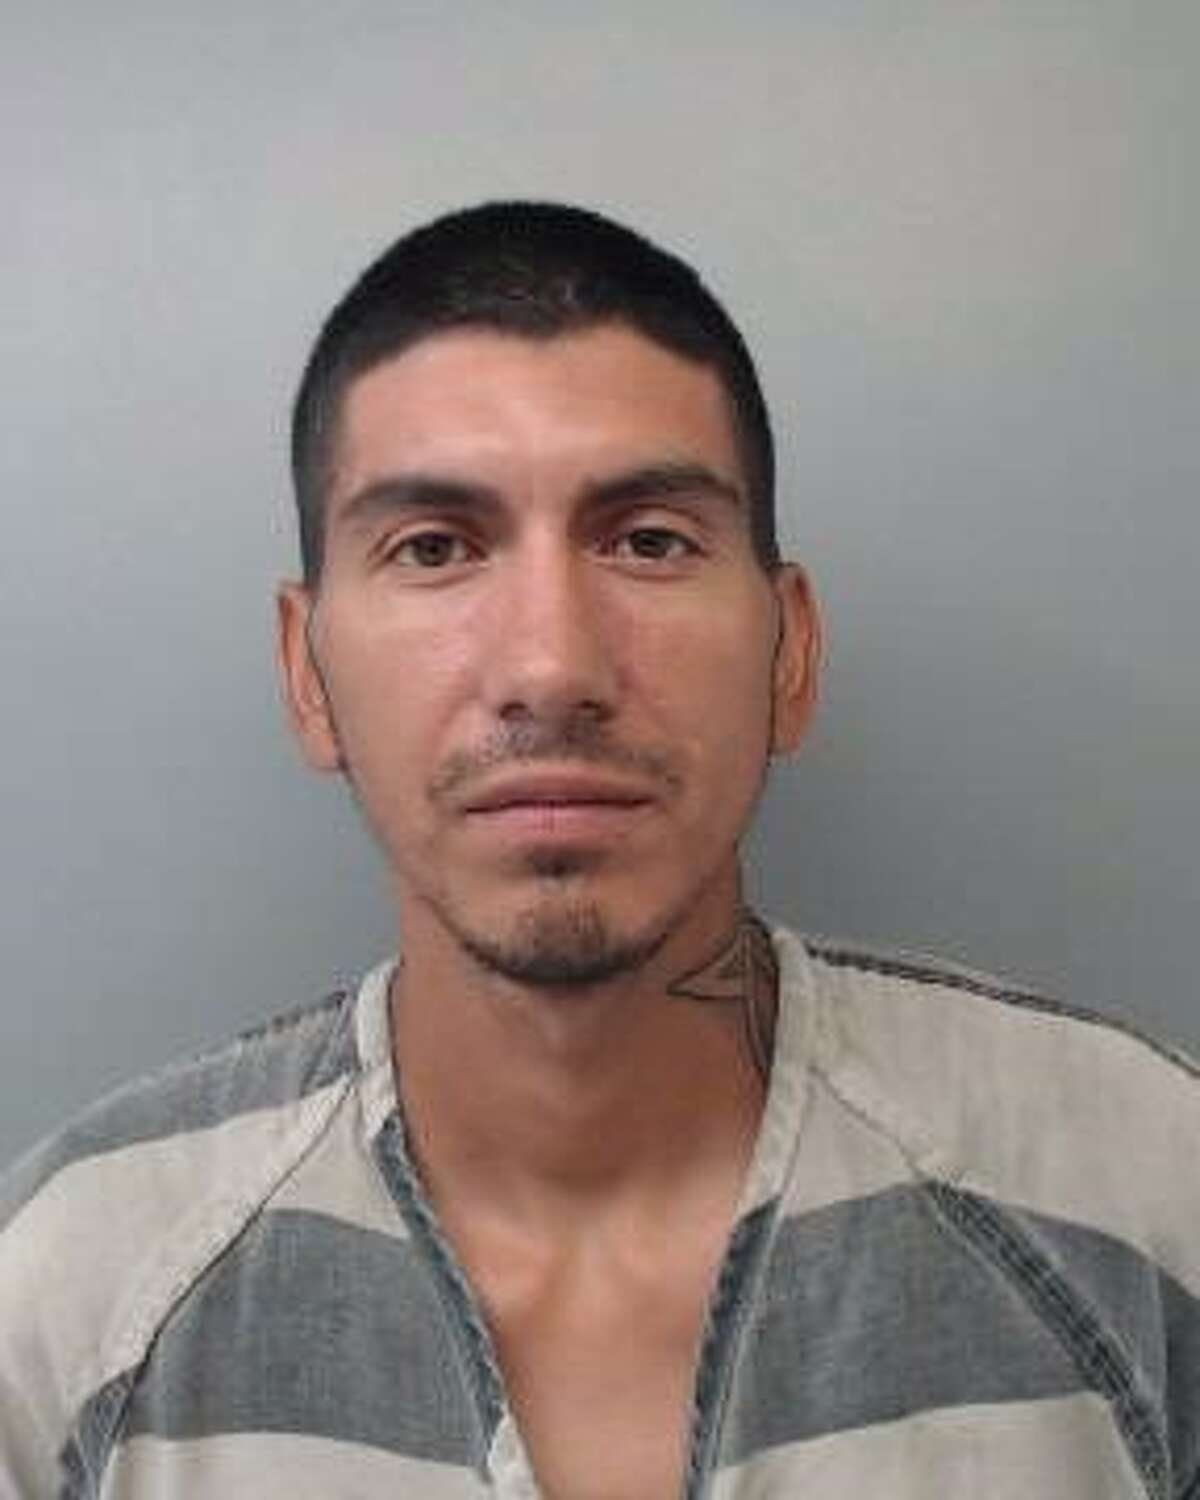 Erick Banda, 33, was served with a warrant charging him with Theft of Property.